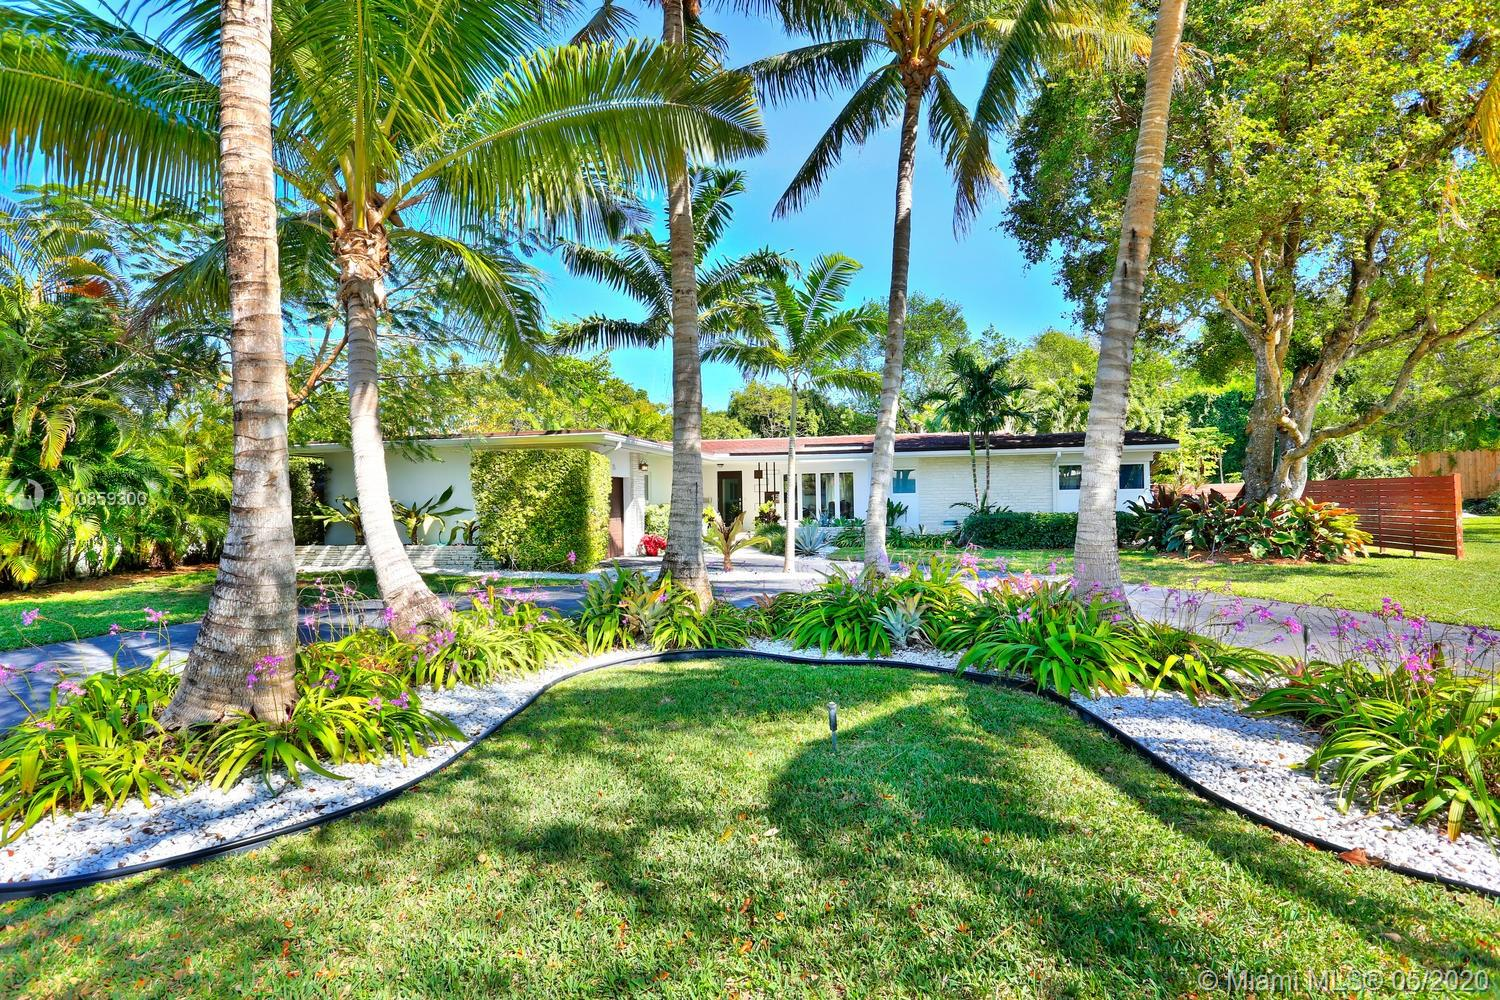 Stunning home, surrounded by close to a half-acre of lush tropical gardens in prestigious North Coconut Grove. Light-filled formal living, dining & family rooms w/walls of glass overlooking the ultra-private, resort-style pool & terrace. Major renovation in 2015, including porcelain tile & wood flooring, custom built-ins & impact glass throughout. A spectacular open kitchen features sleek euro-style wood cabinetry, stone countertops, gas range, high-end appliances, island w/seating + breakfast area. 4BR/4BA + housekeeper's room. Expansive master suite includes his & hers custom walk-in closets & spa-like bath w/soaking tub & frameless glass shower. 24/7 security patrol. 16' above sea-level. Close to the Grove village's bayfront parks & marinas and minutes to downtown, MIA & the Beaches.